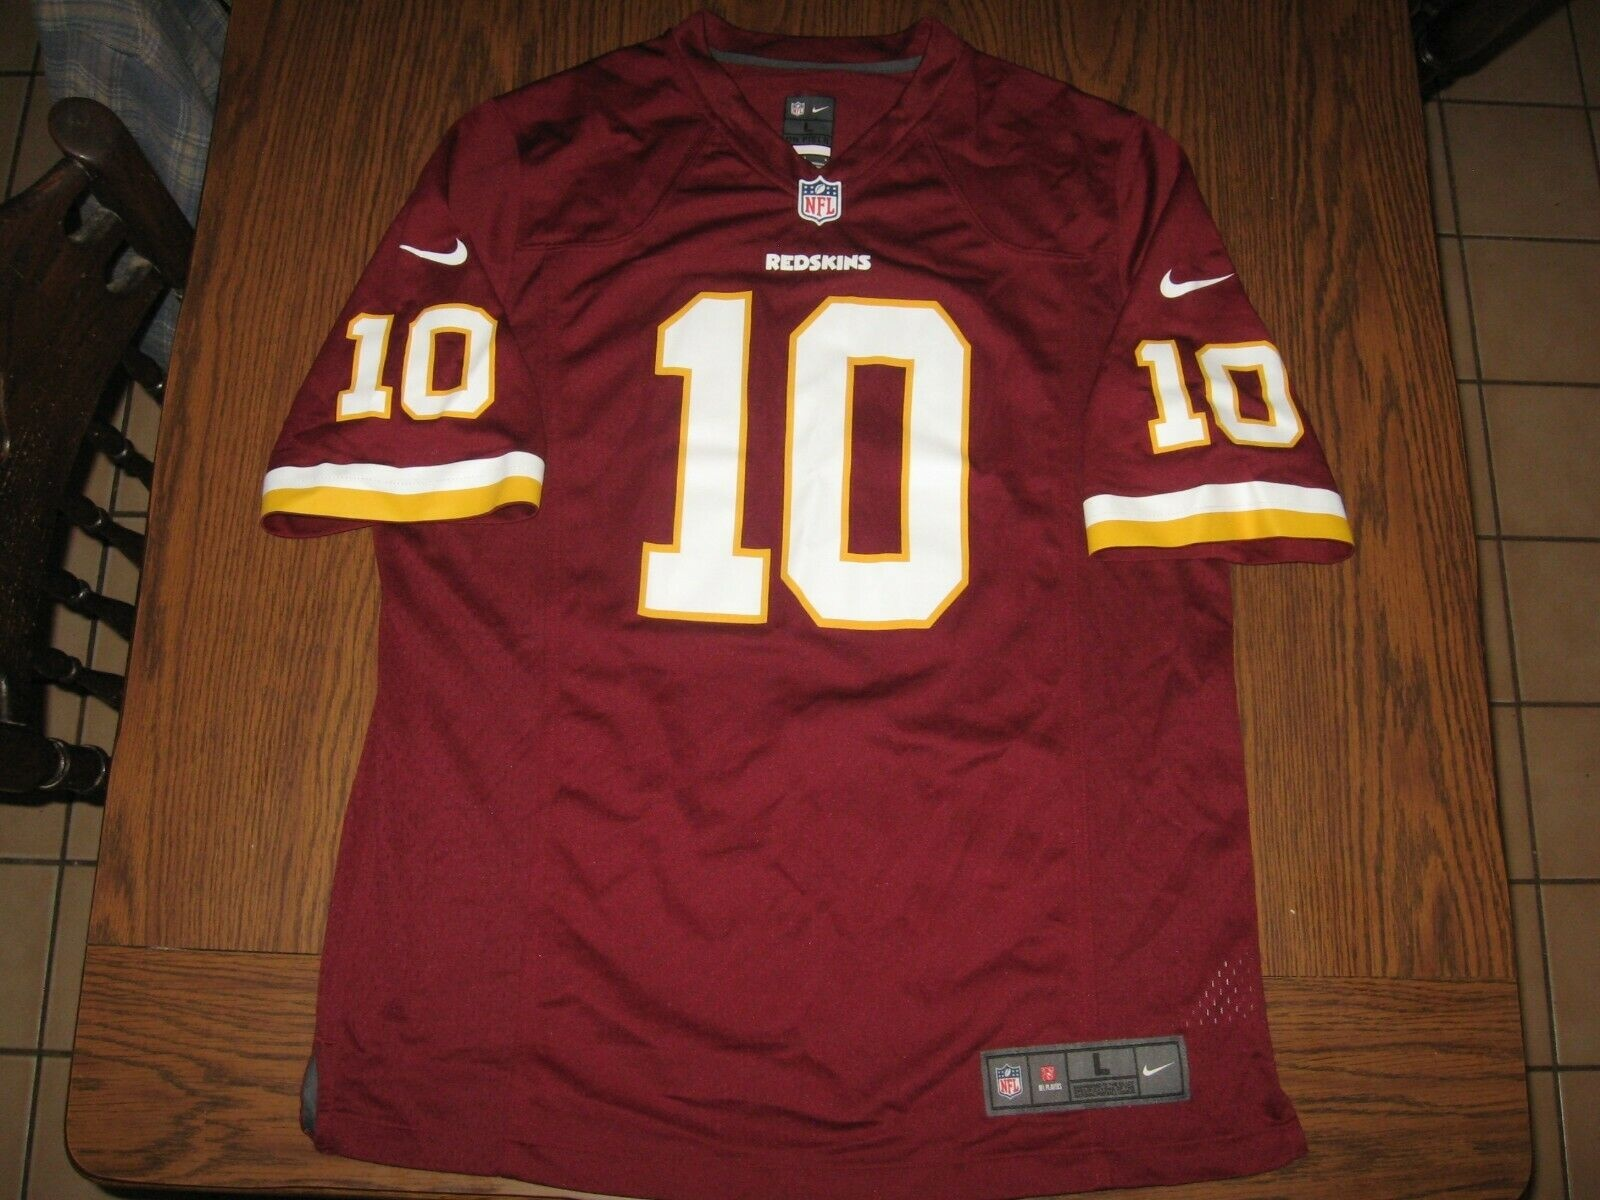 new style 96e52 97bca Where can you buy cheap NFL jerseys? - Quora